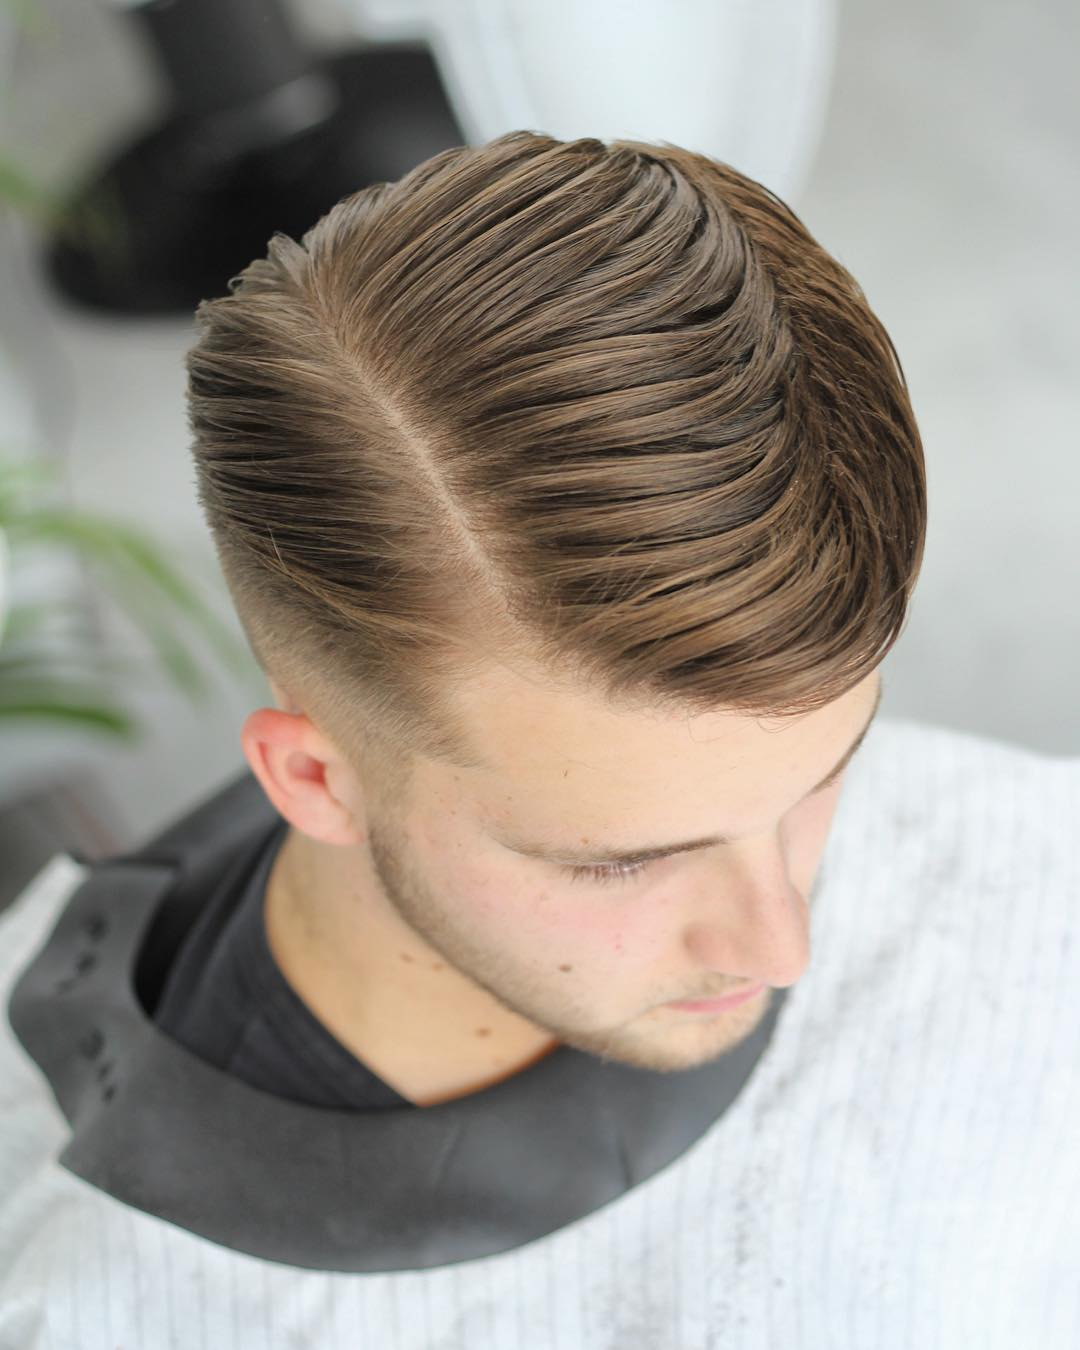 alan_beak long side part mens hairstyle